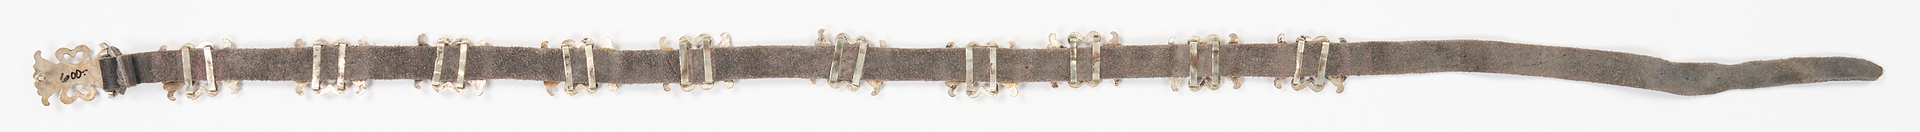 Lot 634: 2 Native American Silver & Turquoise Concho Belts, incl. Benson Yazzie